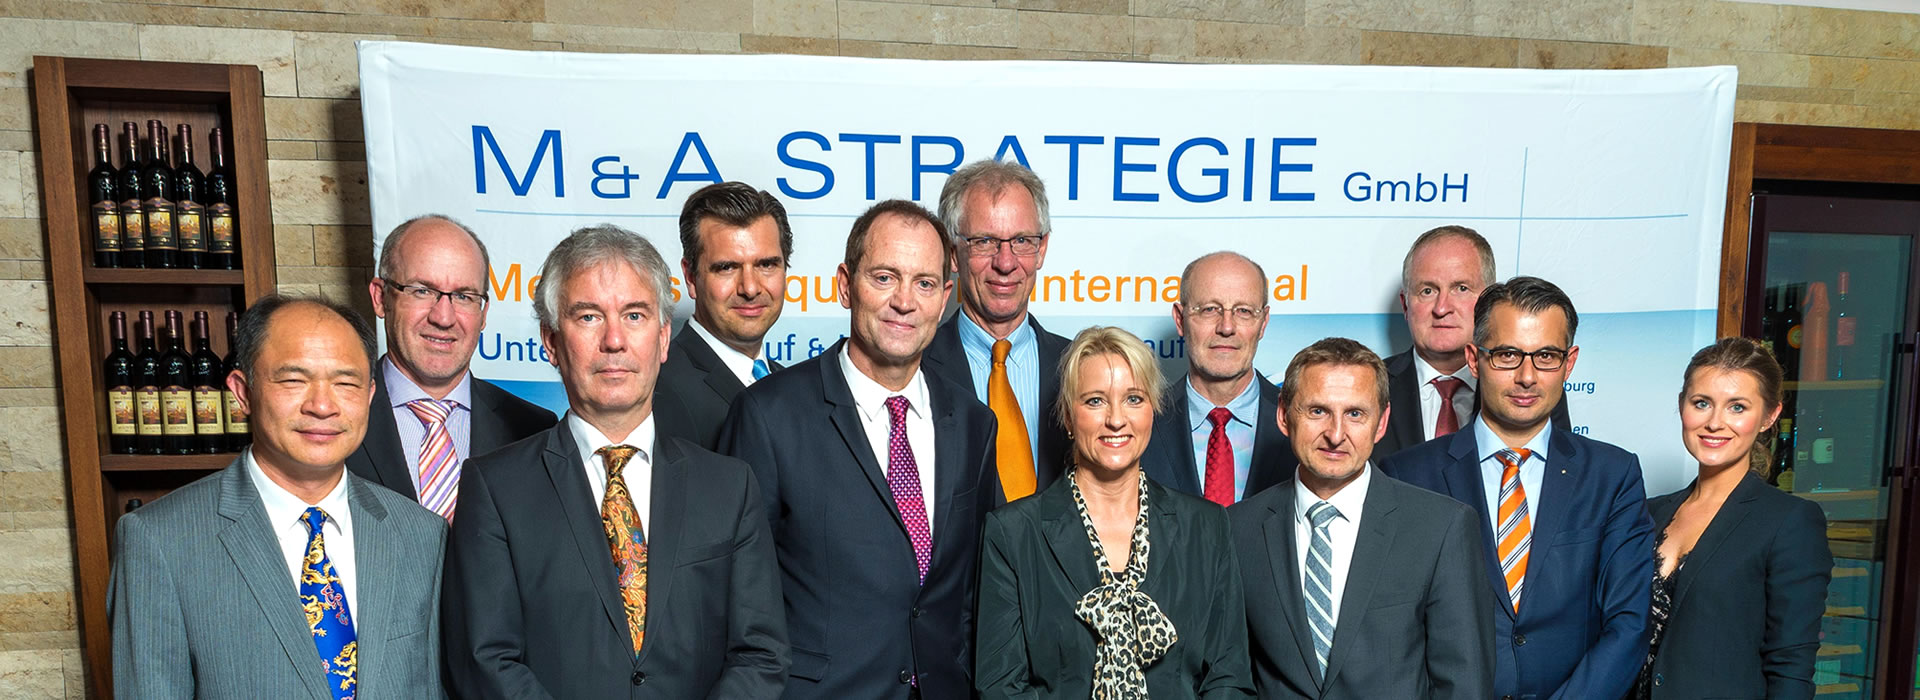 Consultants of M & A Strategie GmbH for Pre M & A and Post Merger Integration